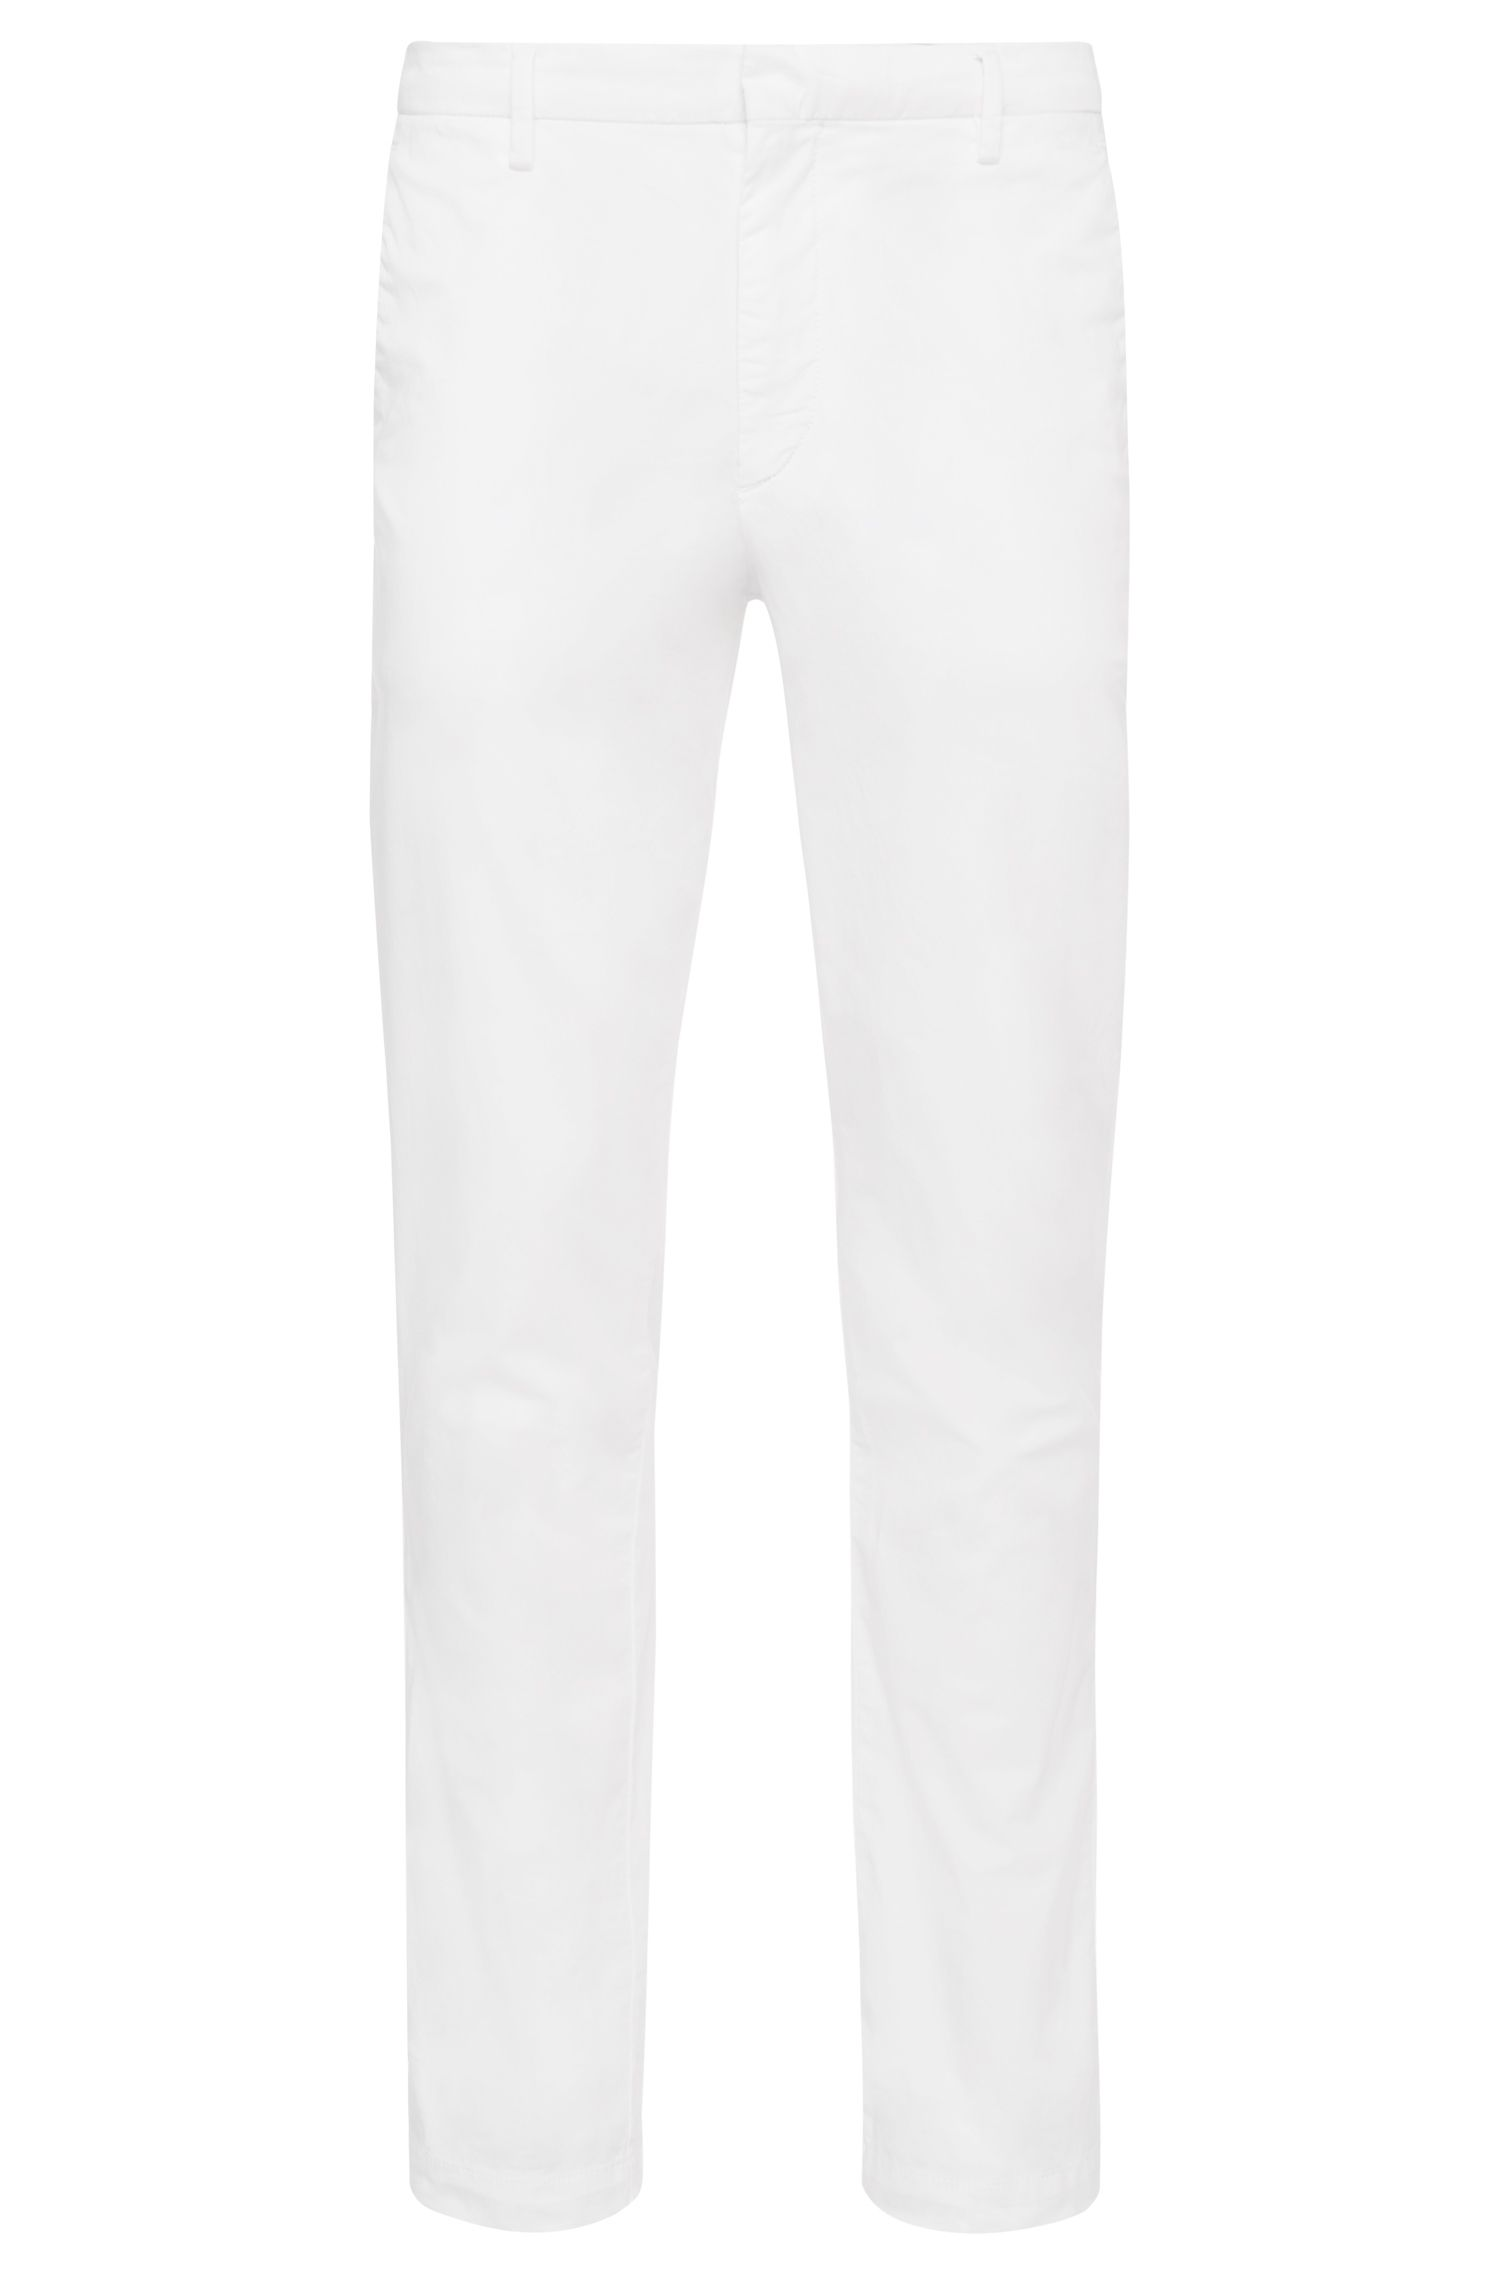 'Kaito-D' | Slim Fit, Stretch Cotton Chinos